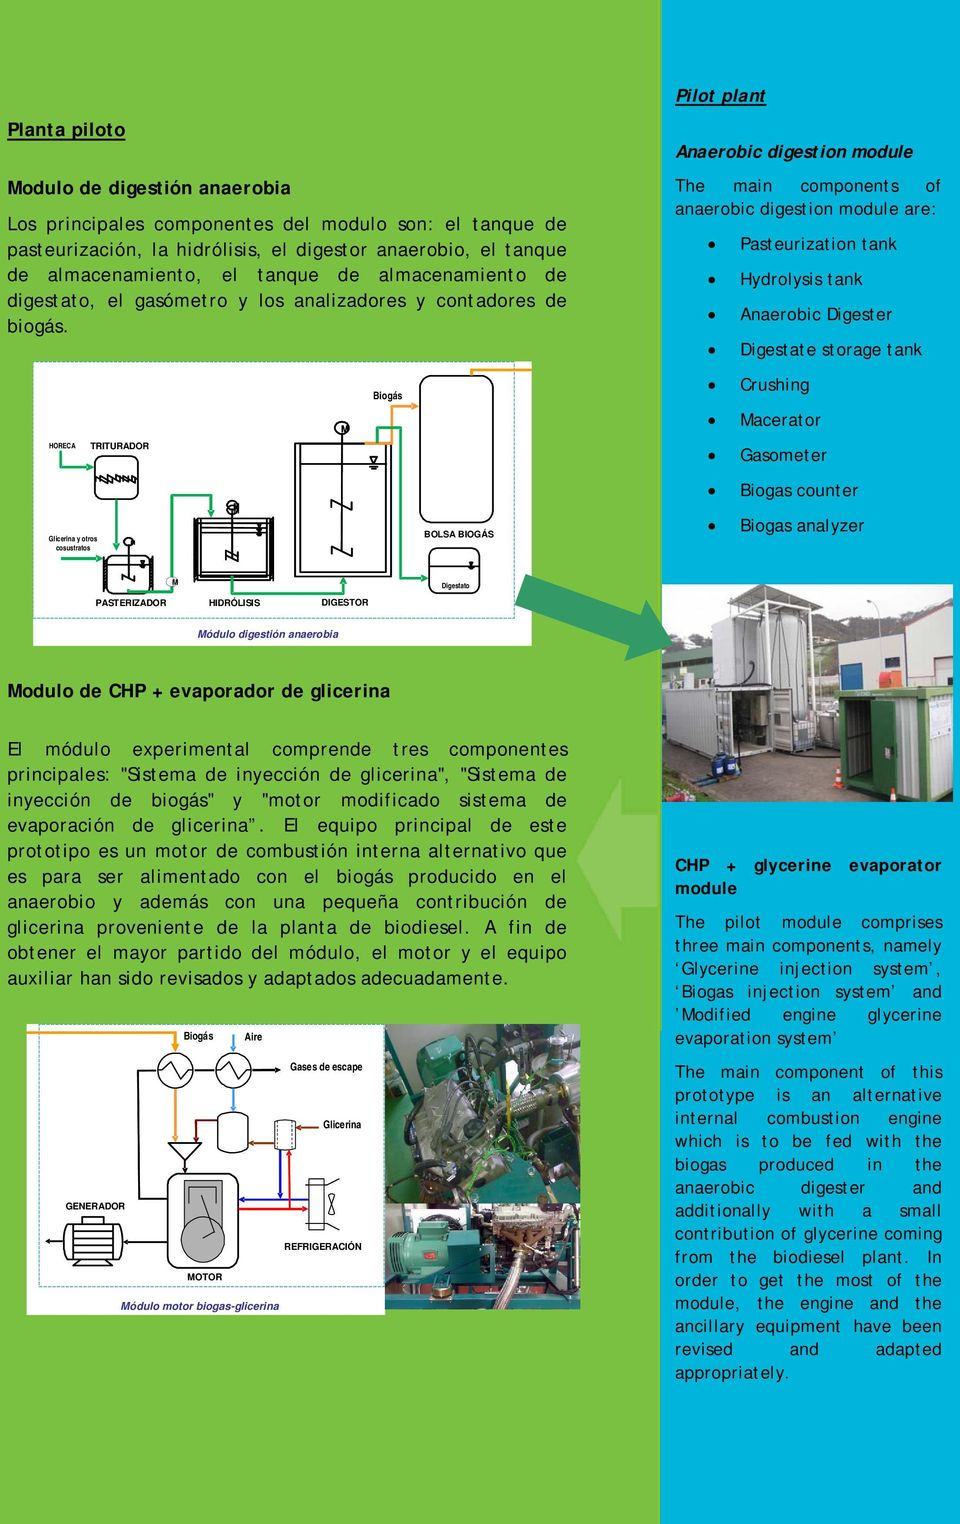 Pilot plant Anaerobic digestion module The main components of anaerobic digestion module are: Pasteurization tank Hydrolysis tank Anaerobic Digester Digestate storage tank Biogás Crushing acerator